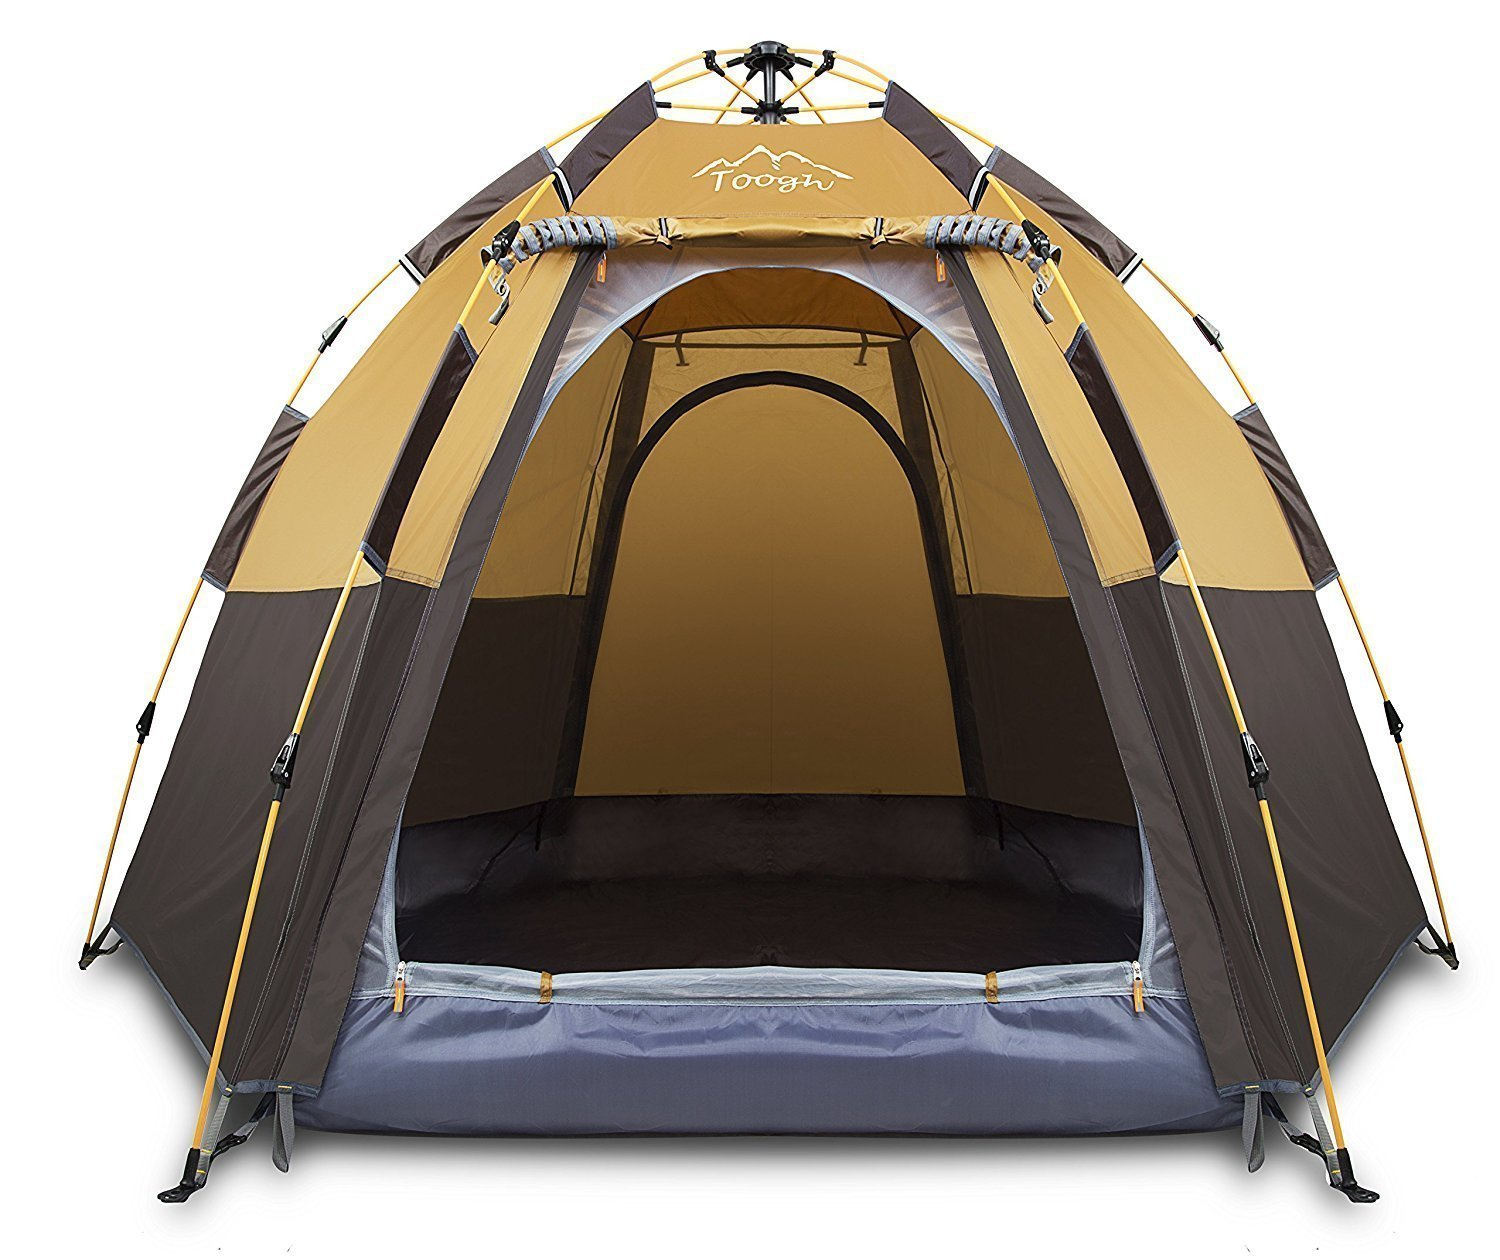 Toogh 3-4 Person Camping Tent 4 Seasons Backpacking Tents Hexagon Sun Dome Automatic Pop-Up Outdoor Sports Tent